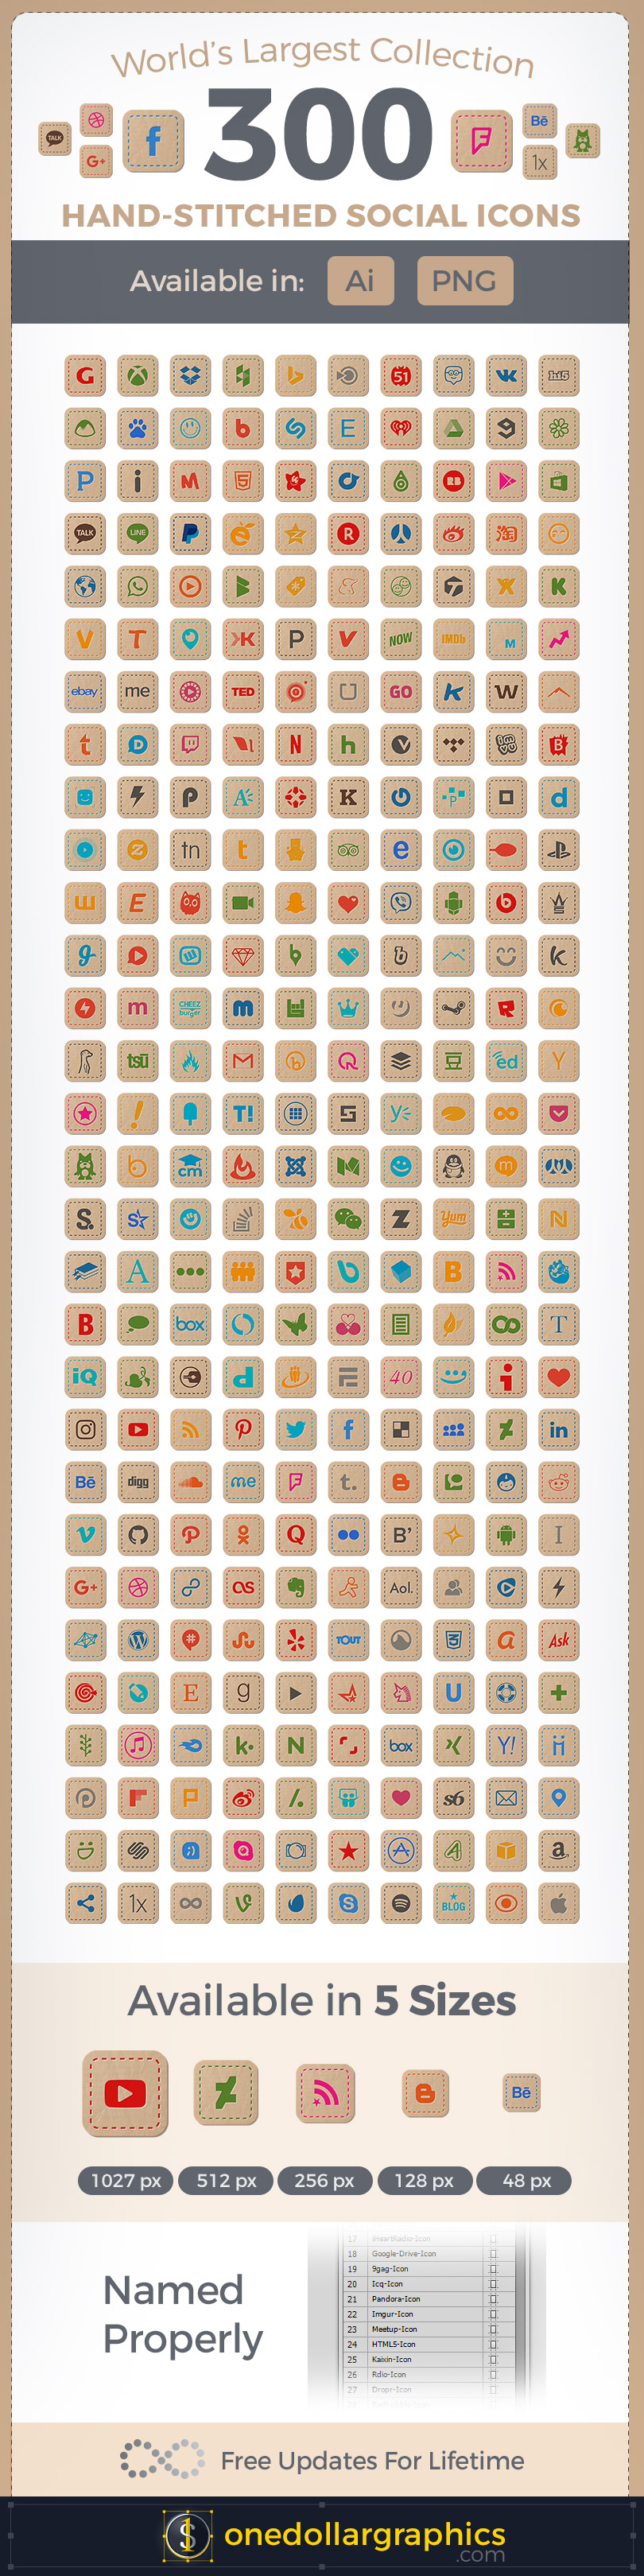 300-Hand-Stitched-Premium-Social-Media-Icons-For-Art-Craft-Websites